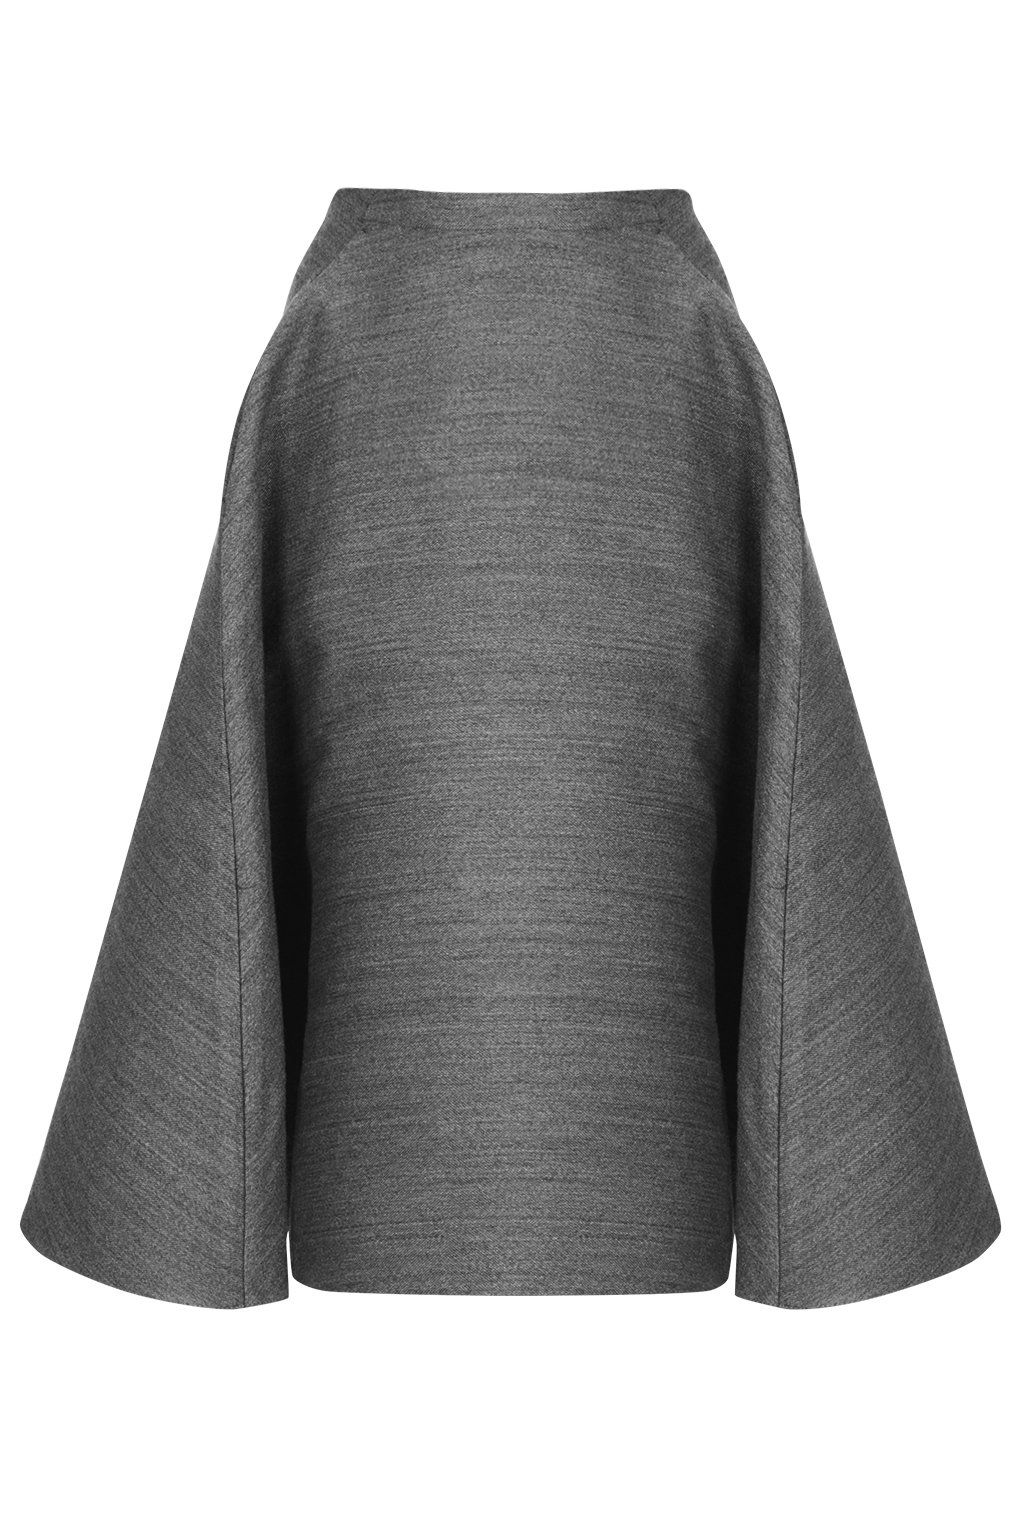 Full A-Line Midi Skirt by Unique